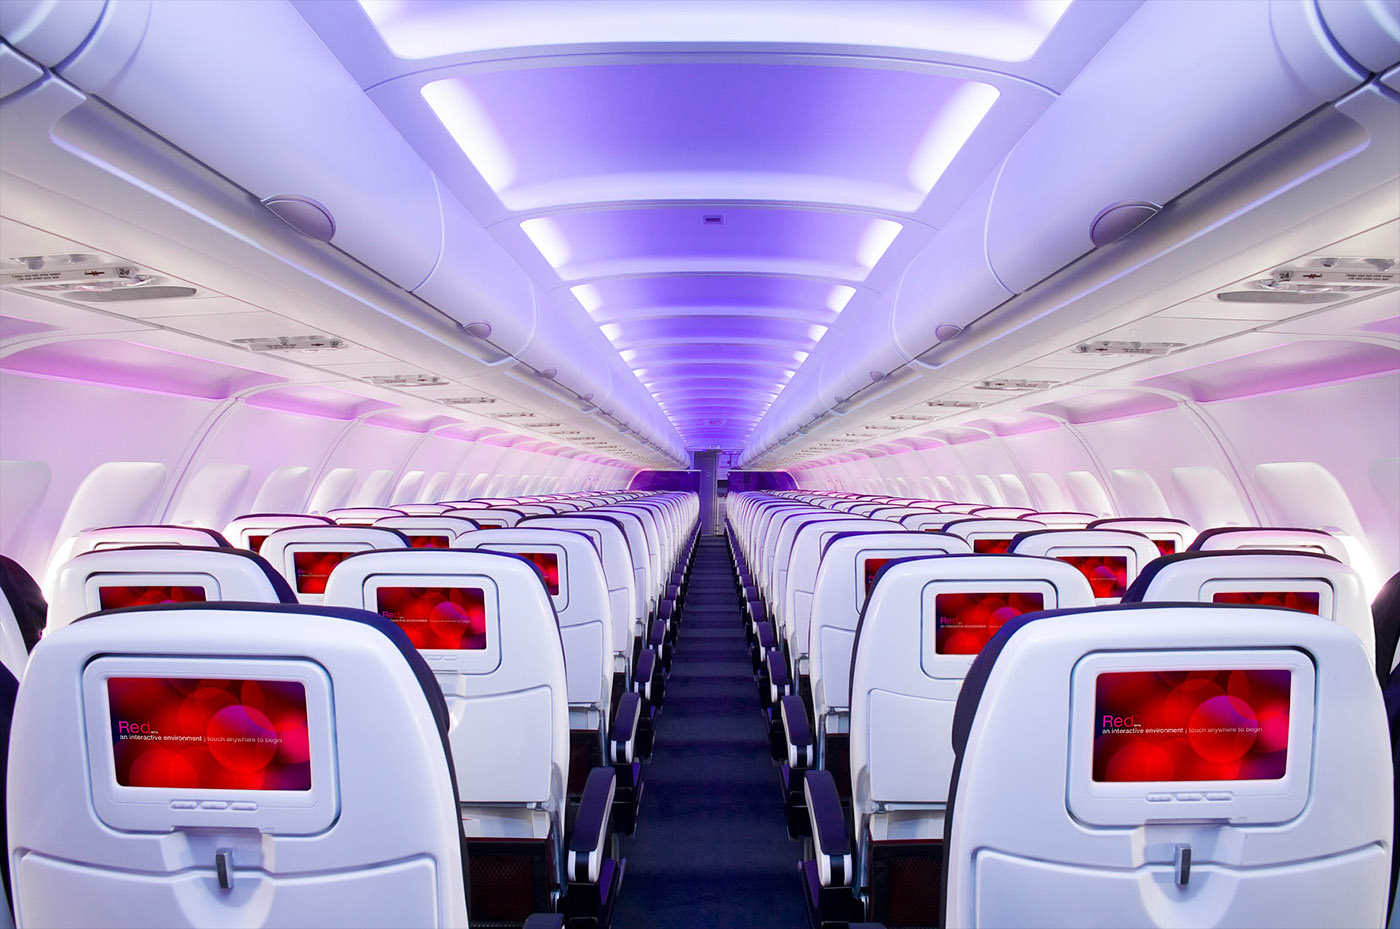 Virgin America Image Library On Behance